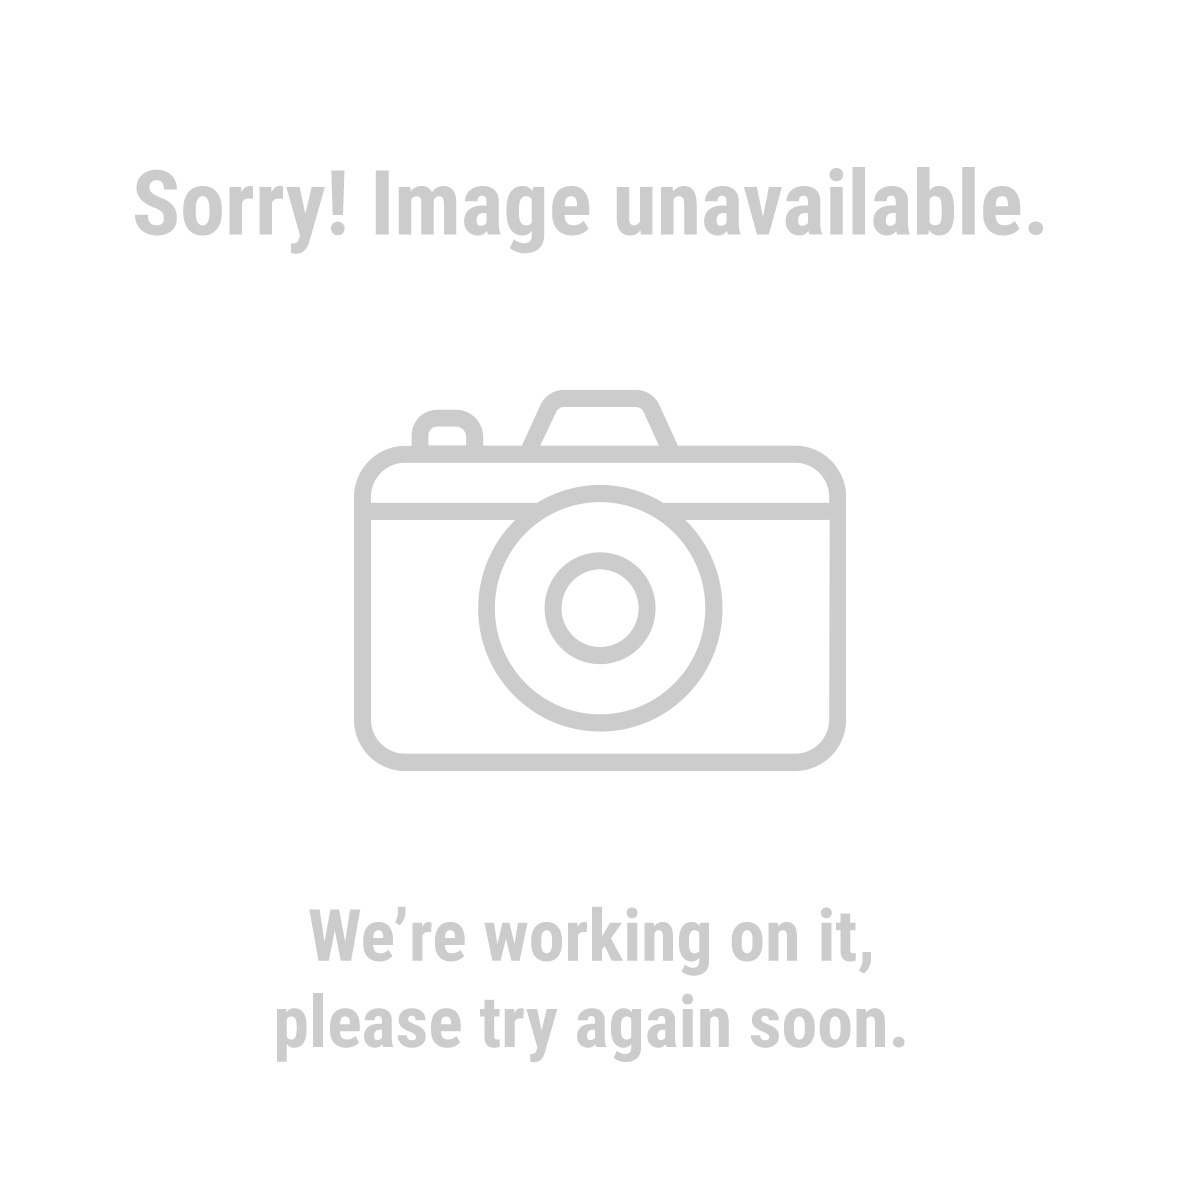 Haul-Master® 61720 10000 lb. Capacity Weight-Distributing Hitch